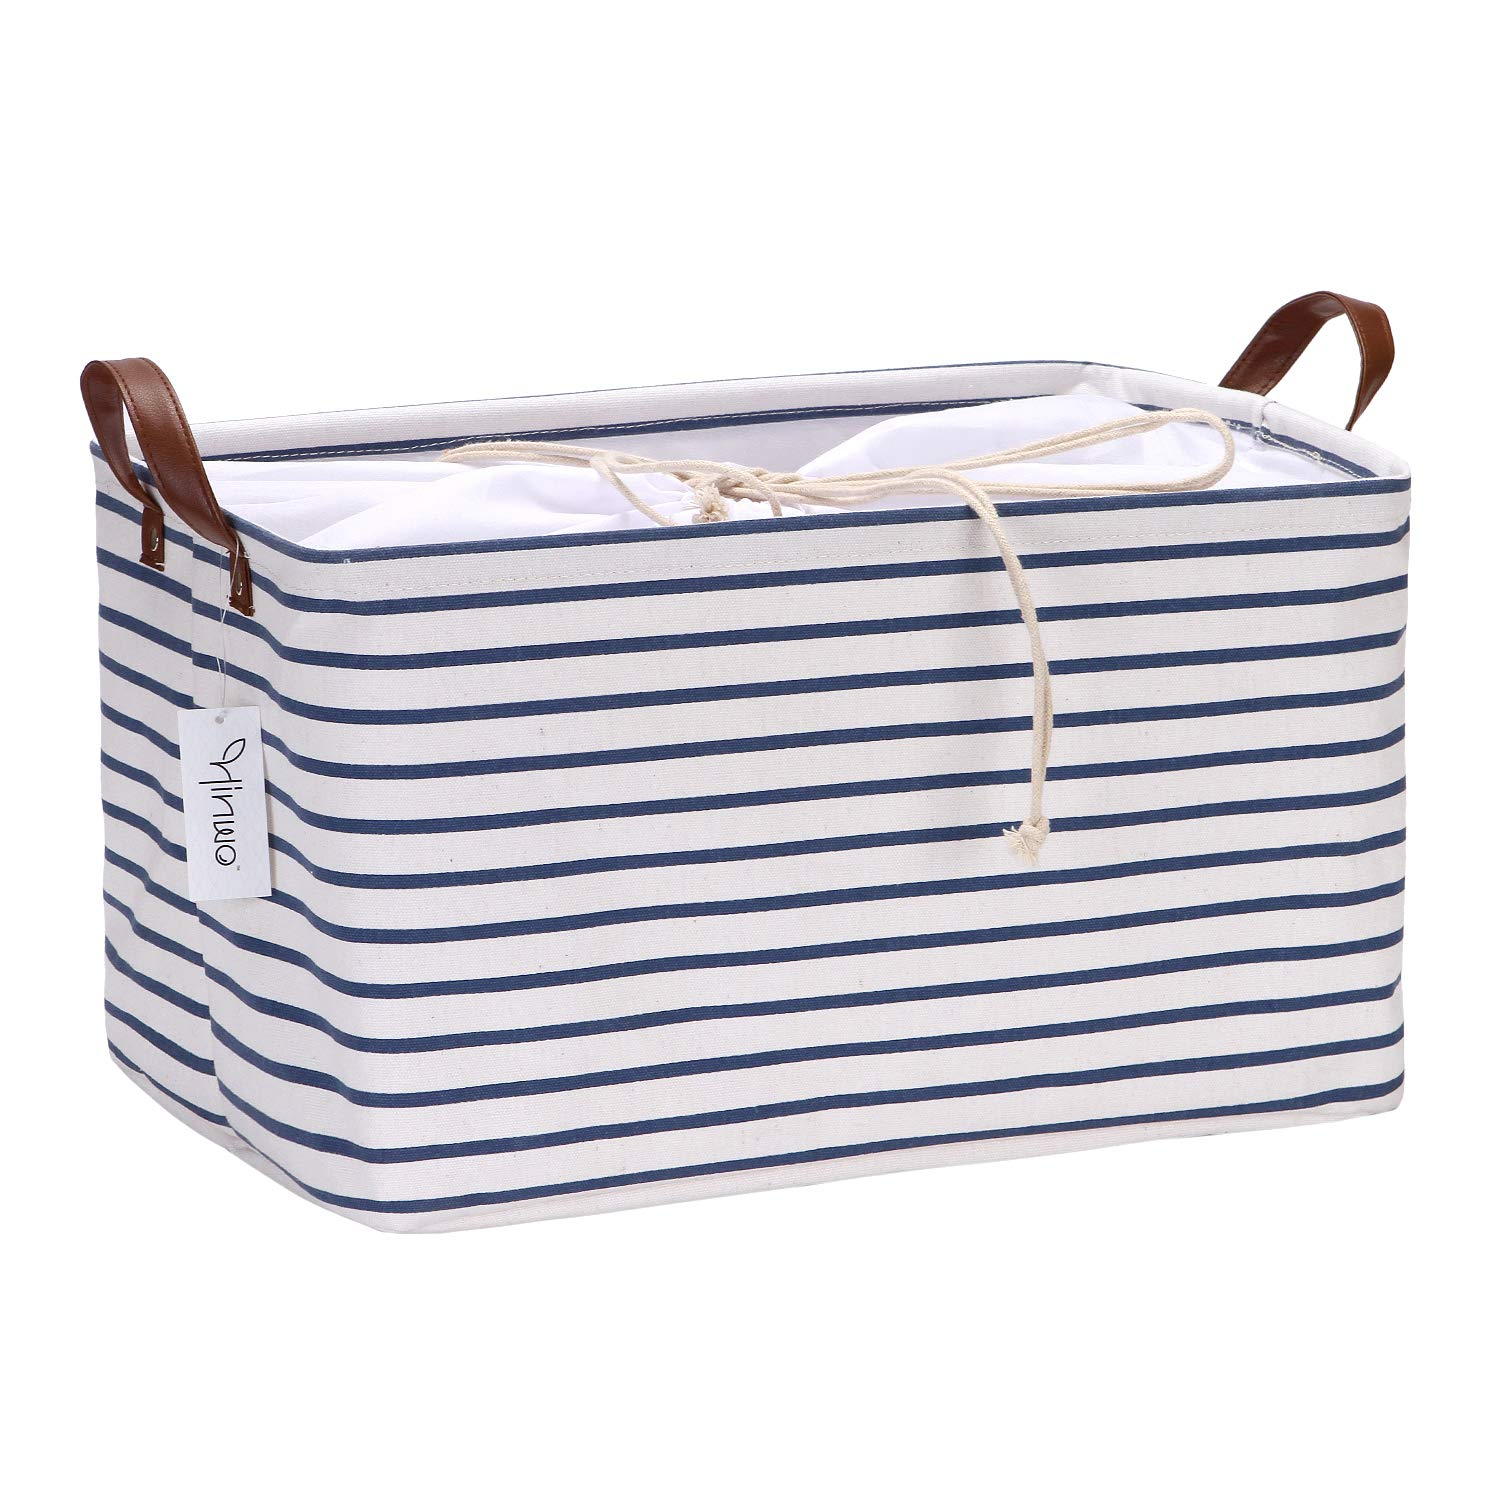 Hinwo 31L Large Capacity Storage Basket Canvas Fabric Storage Bin Collapsible Storage Box with PU Leather Handles and Drawstring Closure, 16.5 by 11.8 inches, Waterproof Inner Layer, Navy Stripe